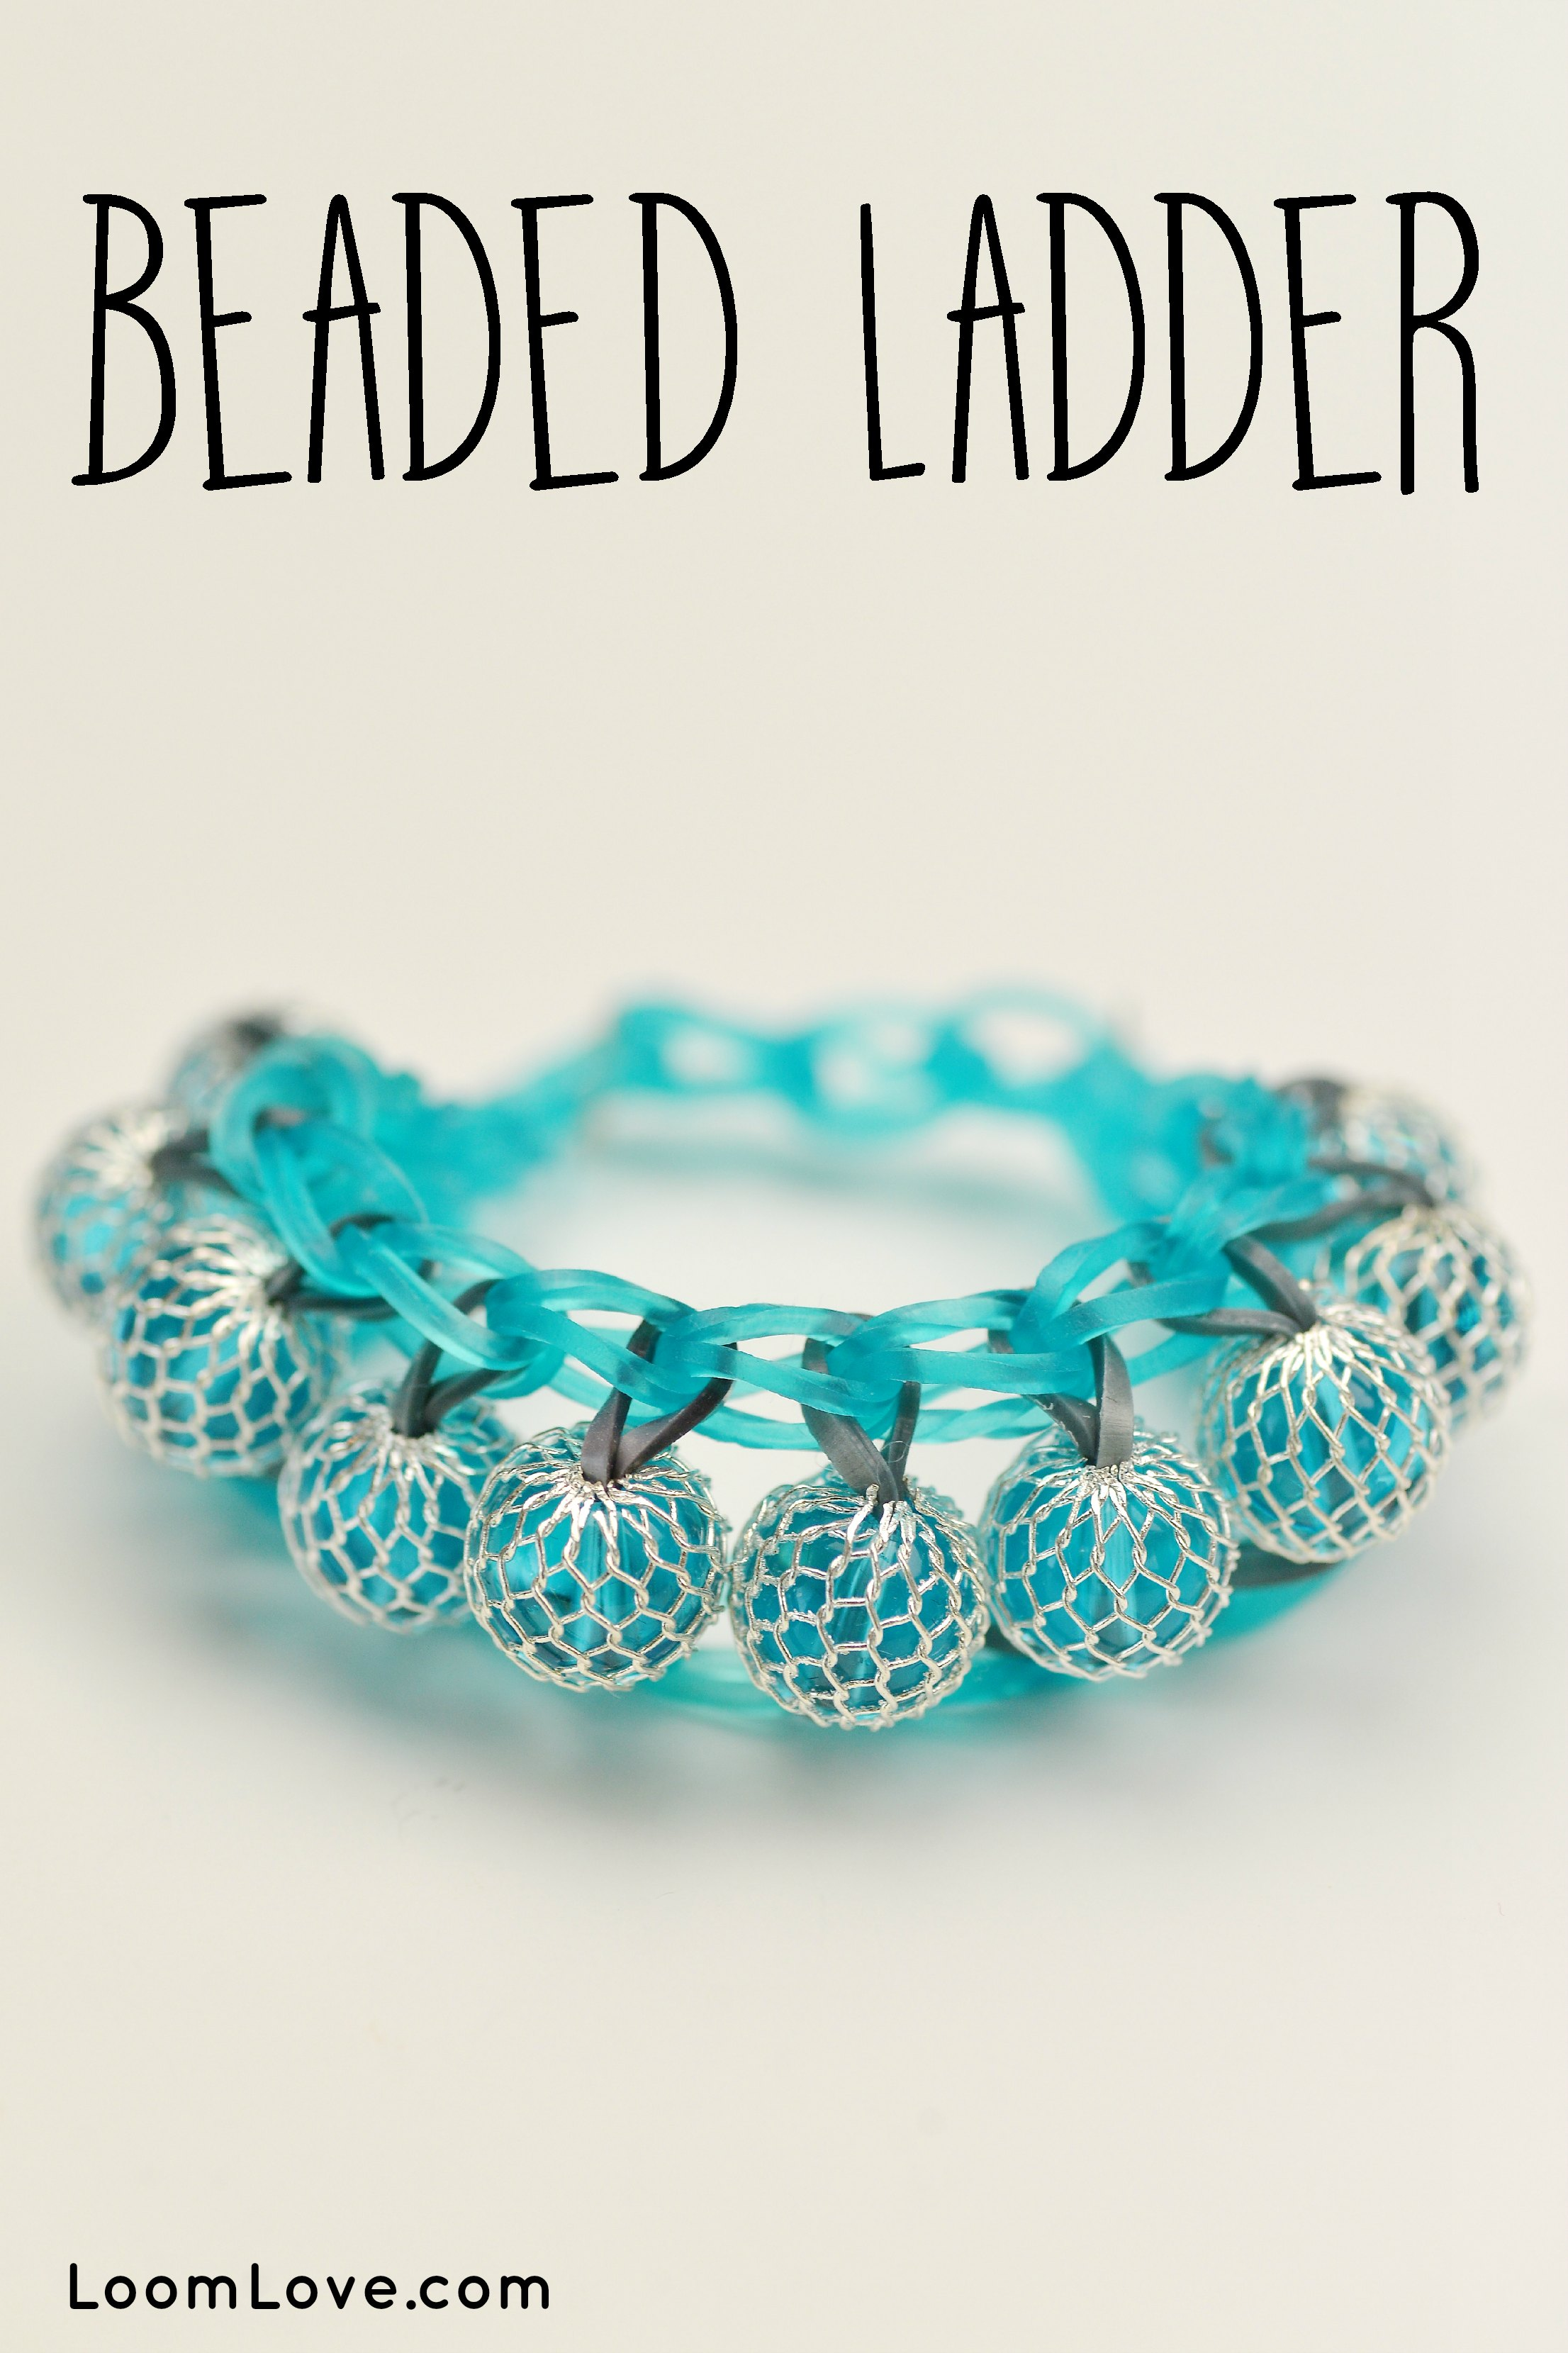 How To Make A Rainbow Loom Beaded Ladder Bracelet